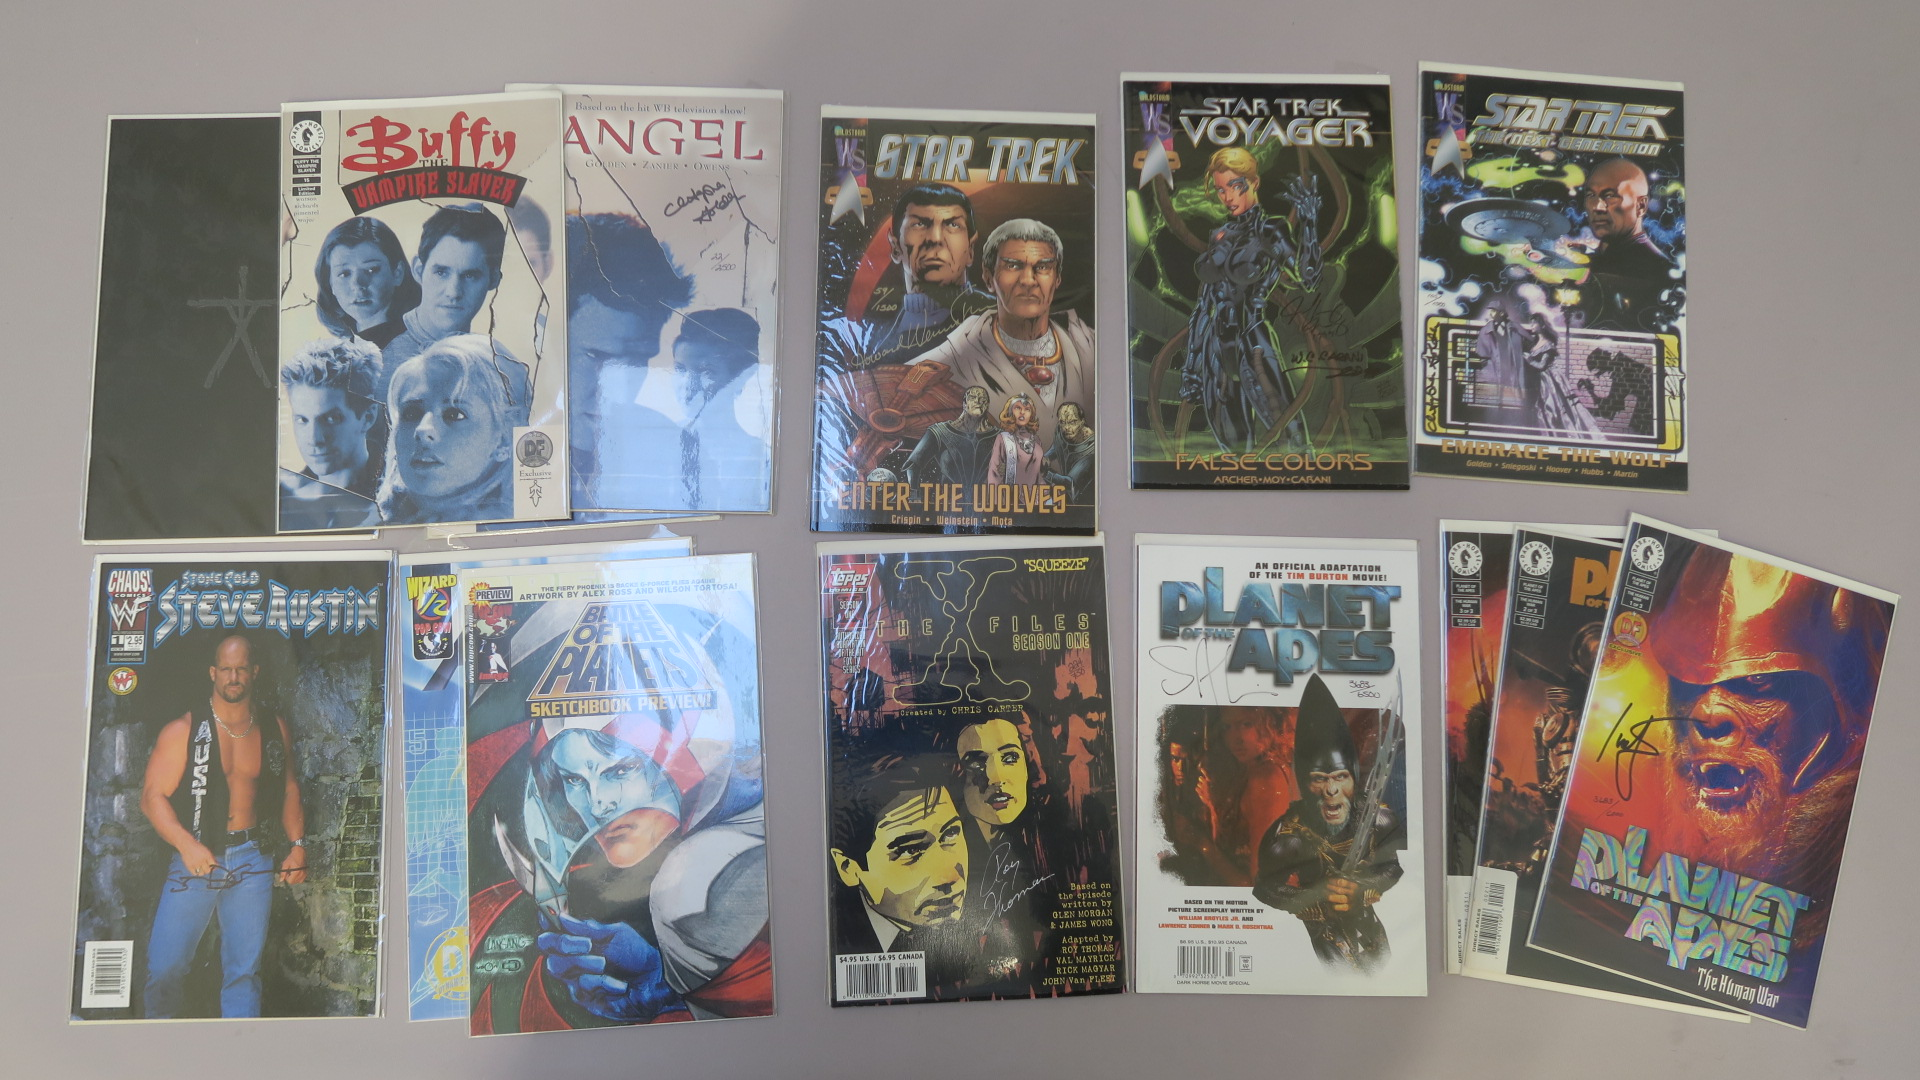 Lot 3 - Signed comics including The X Files Season 1 signed by Roy Thomas, Star Trek Enter the Wolves signed